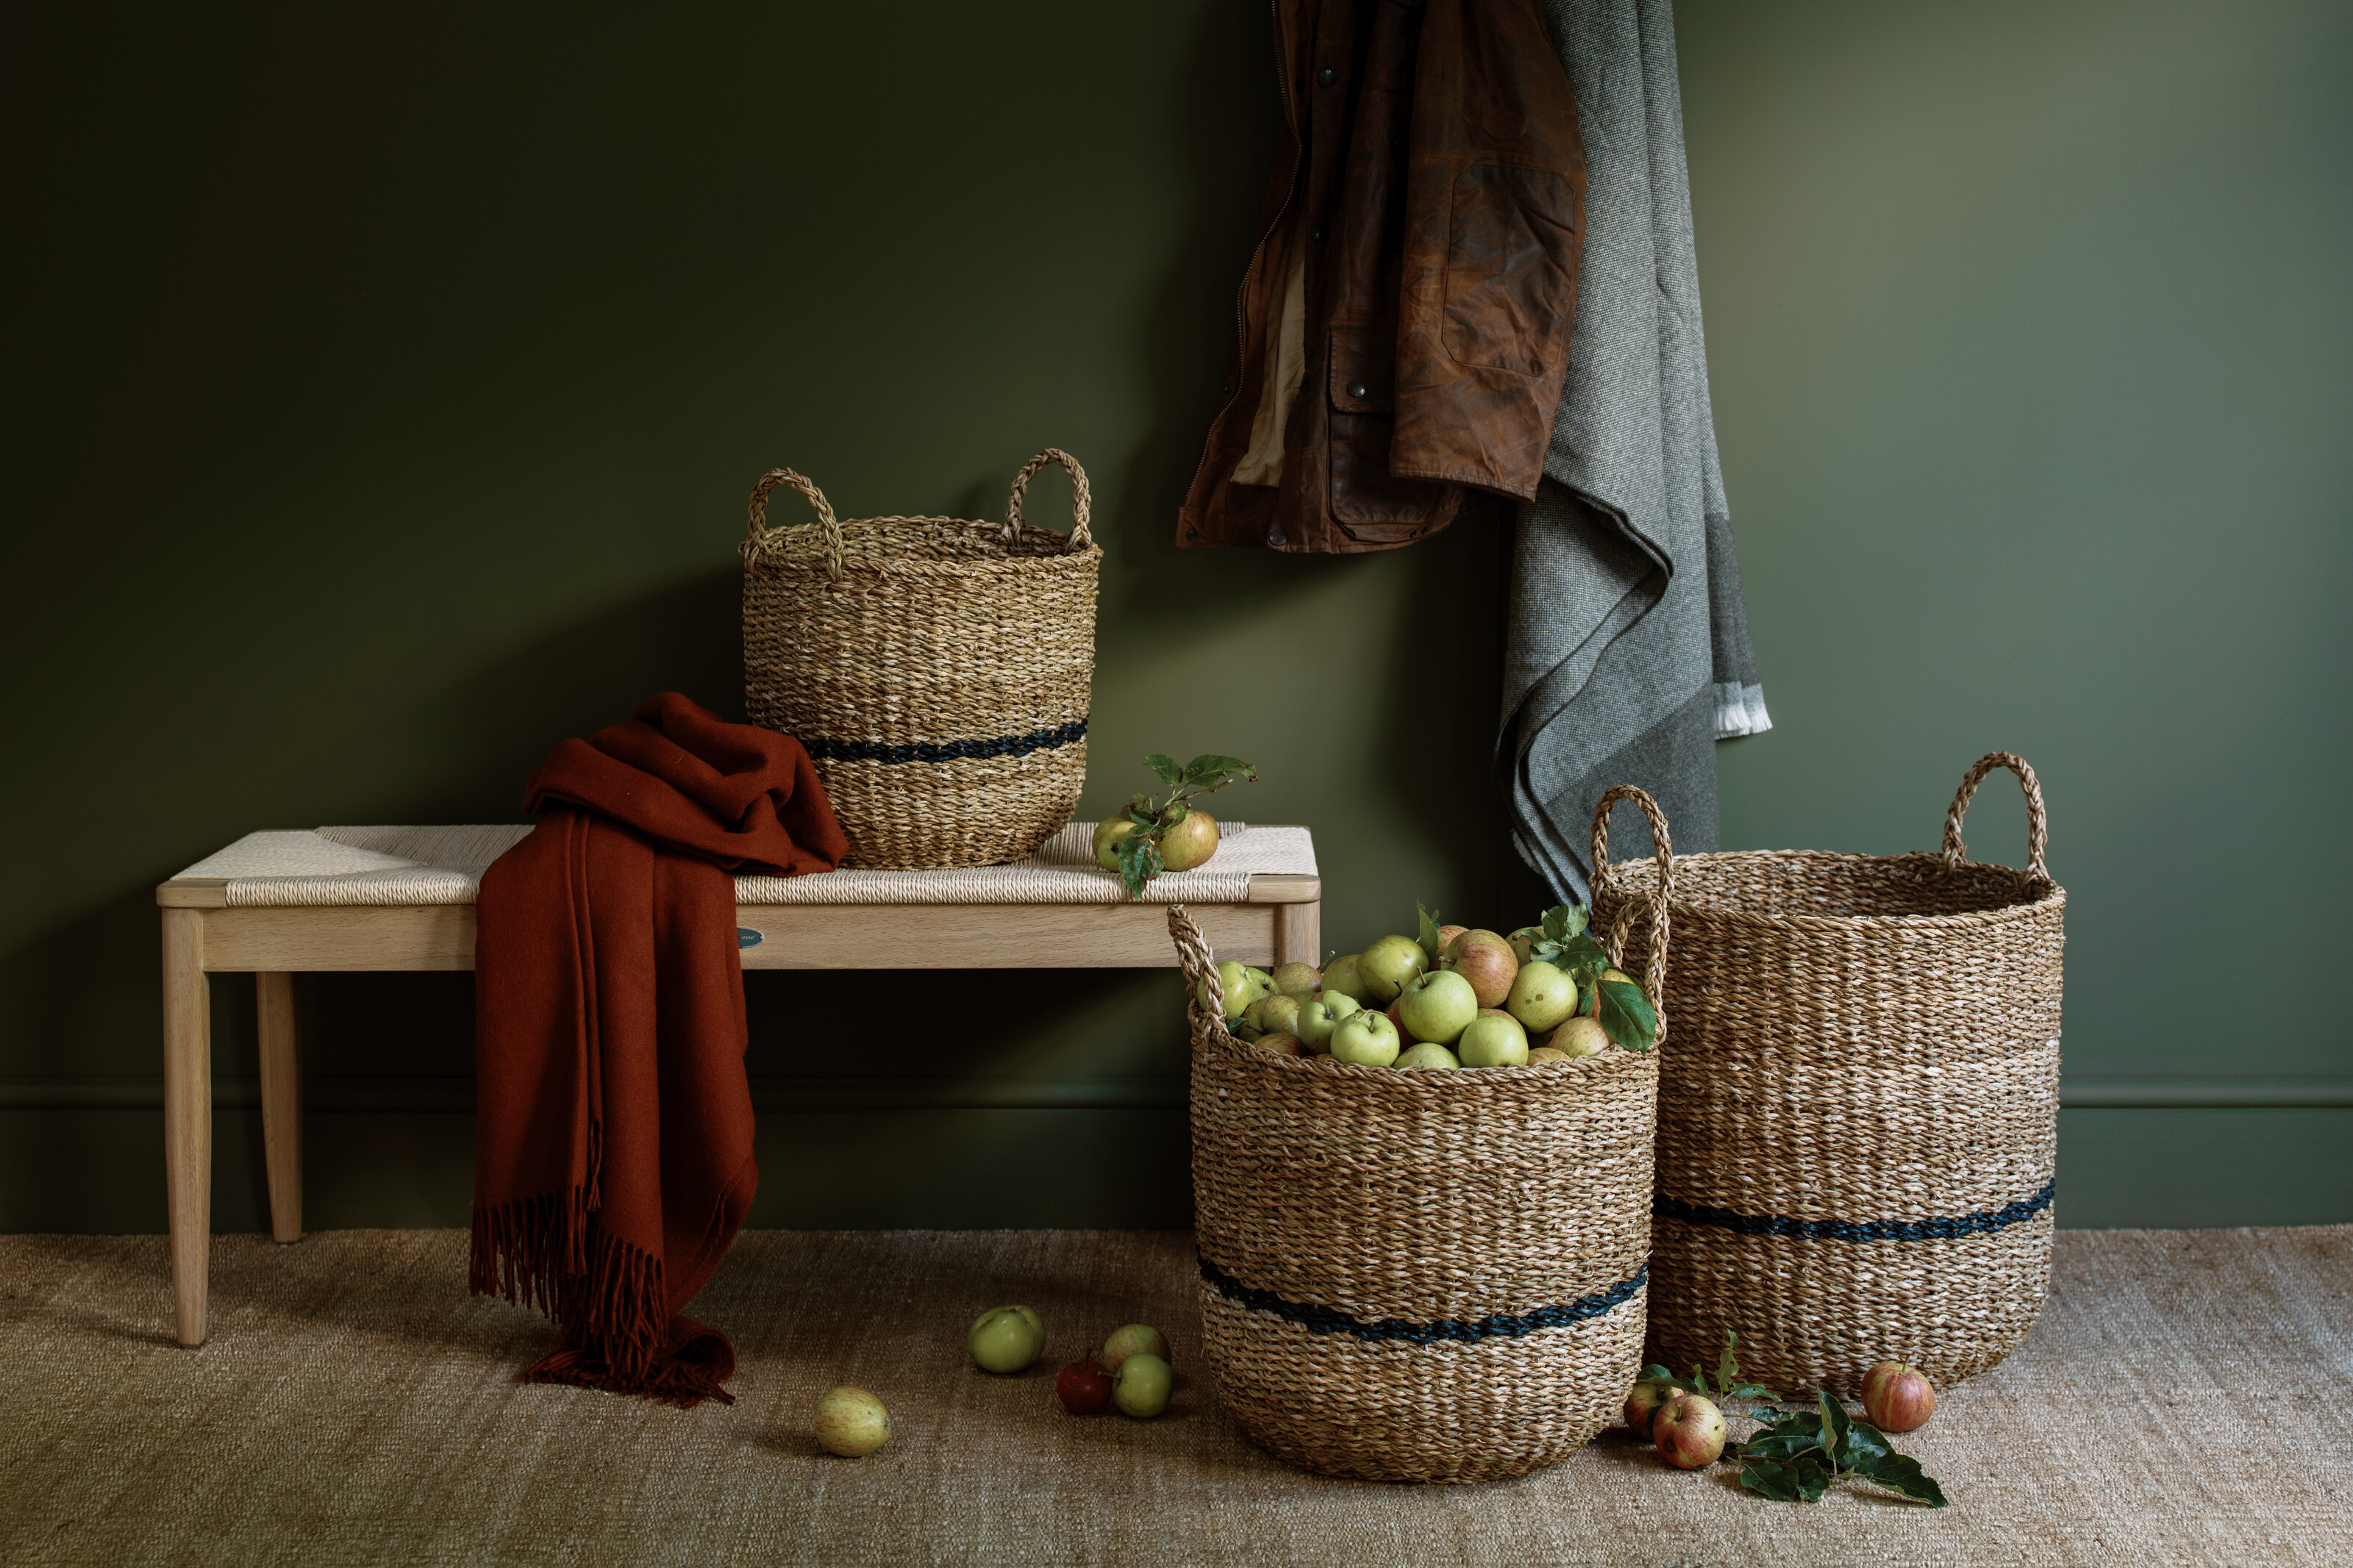 Olive hallway with baskets